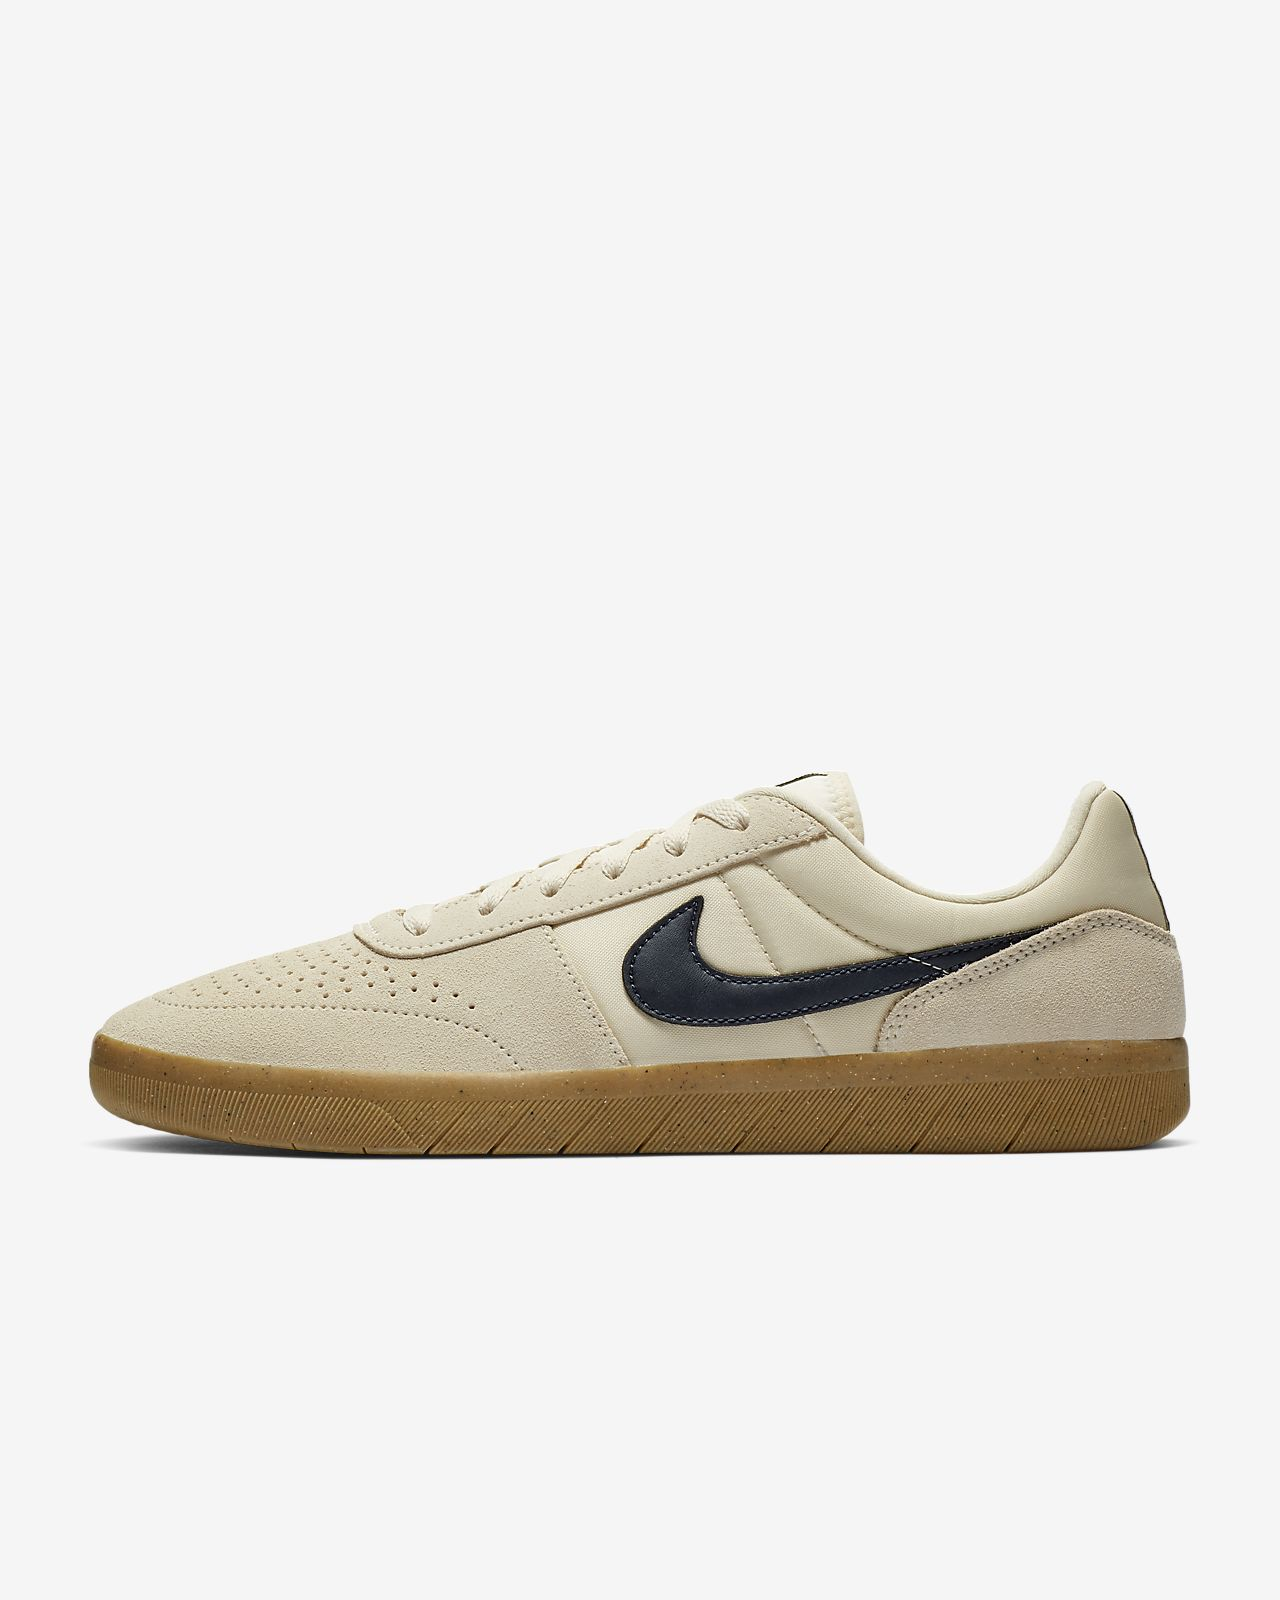 uk availability 8eb23 63f1d Low Resolution Nike SB Team Classic Skateschoen voor heren Nike SB Team  Classic Skateschoen voor heren